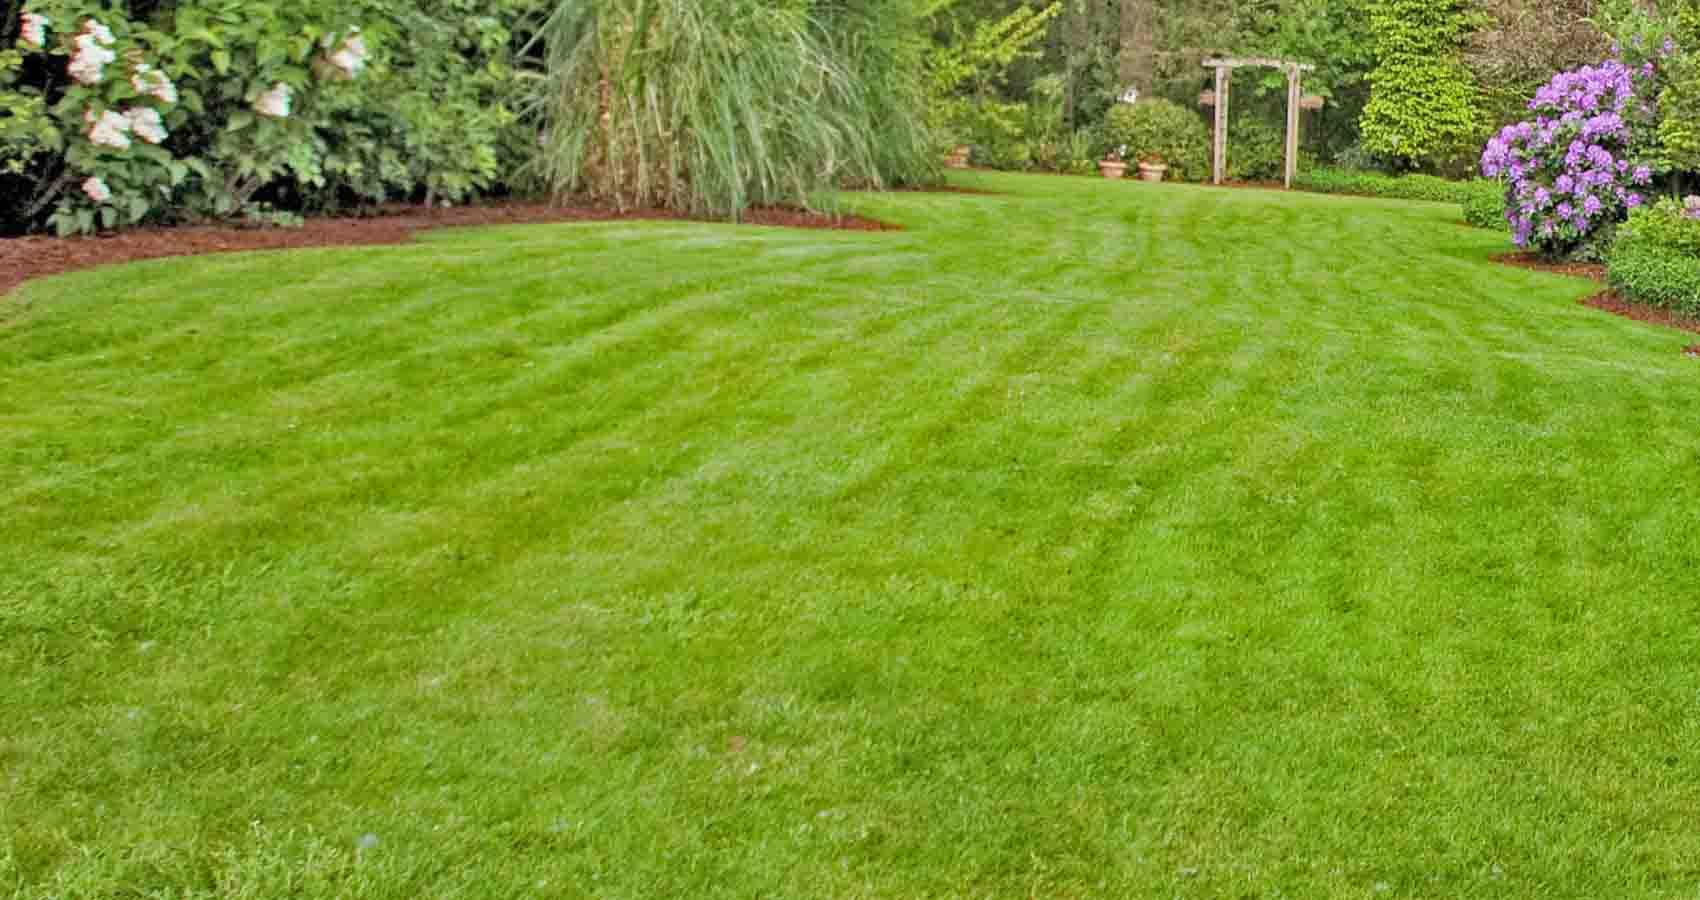 Lawn Care and Maintenance Blairstown, NJ